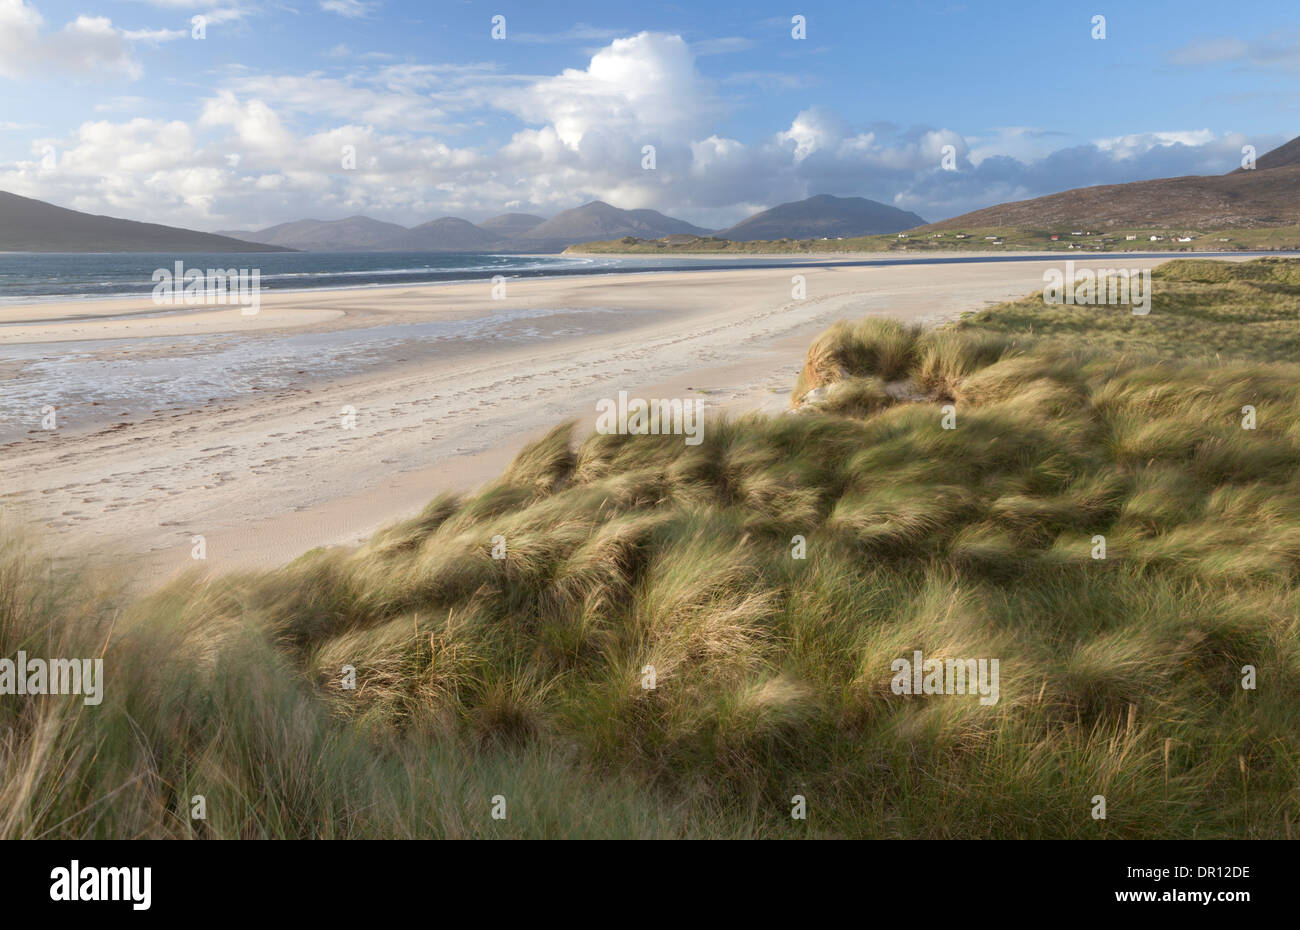 A view of the beach at Seilebost, Isle of Harris, Outer Hebrides, Scotland - Stock Image